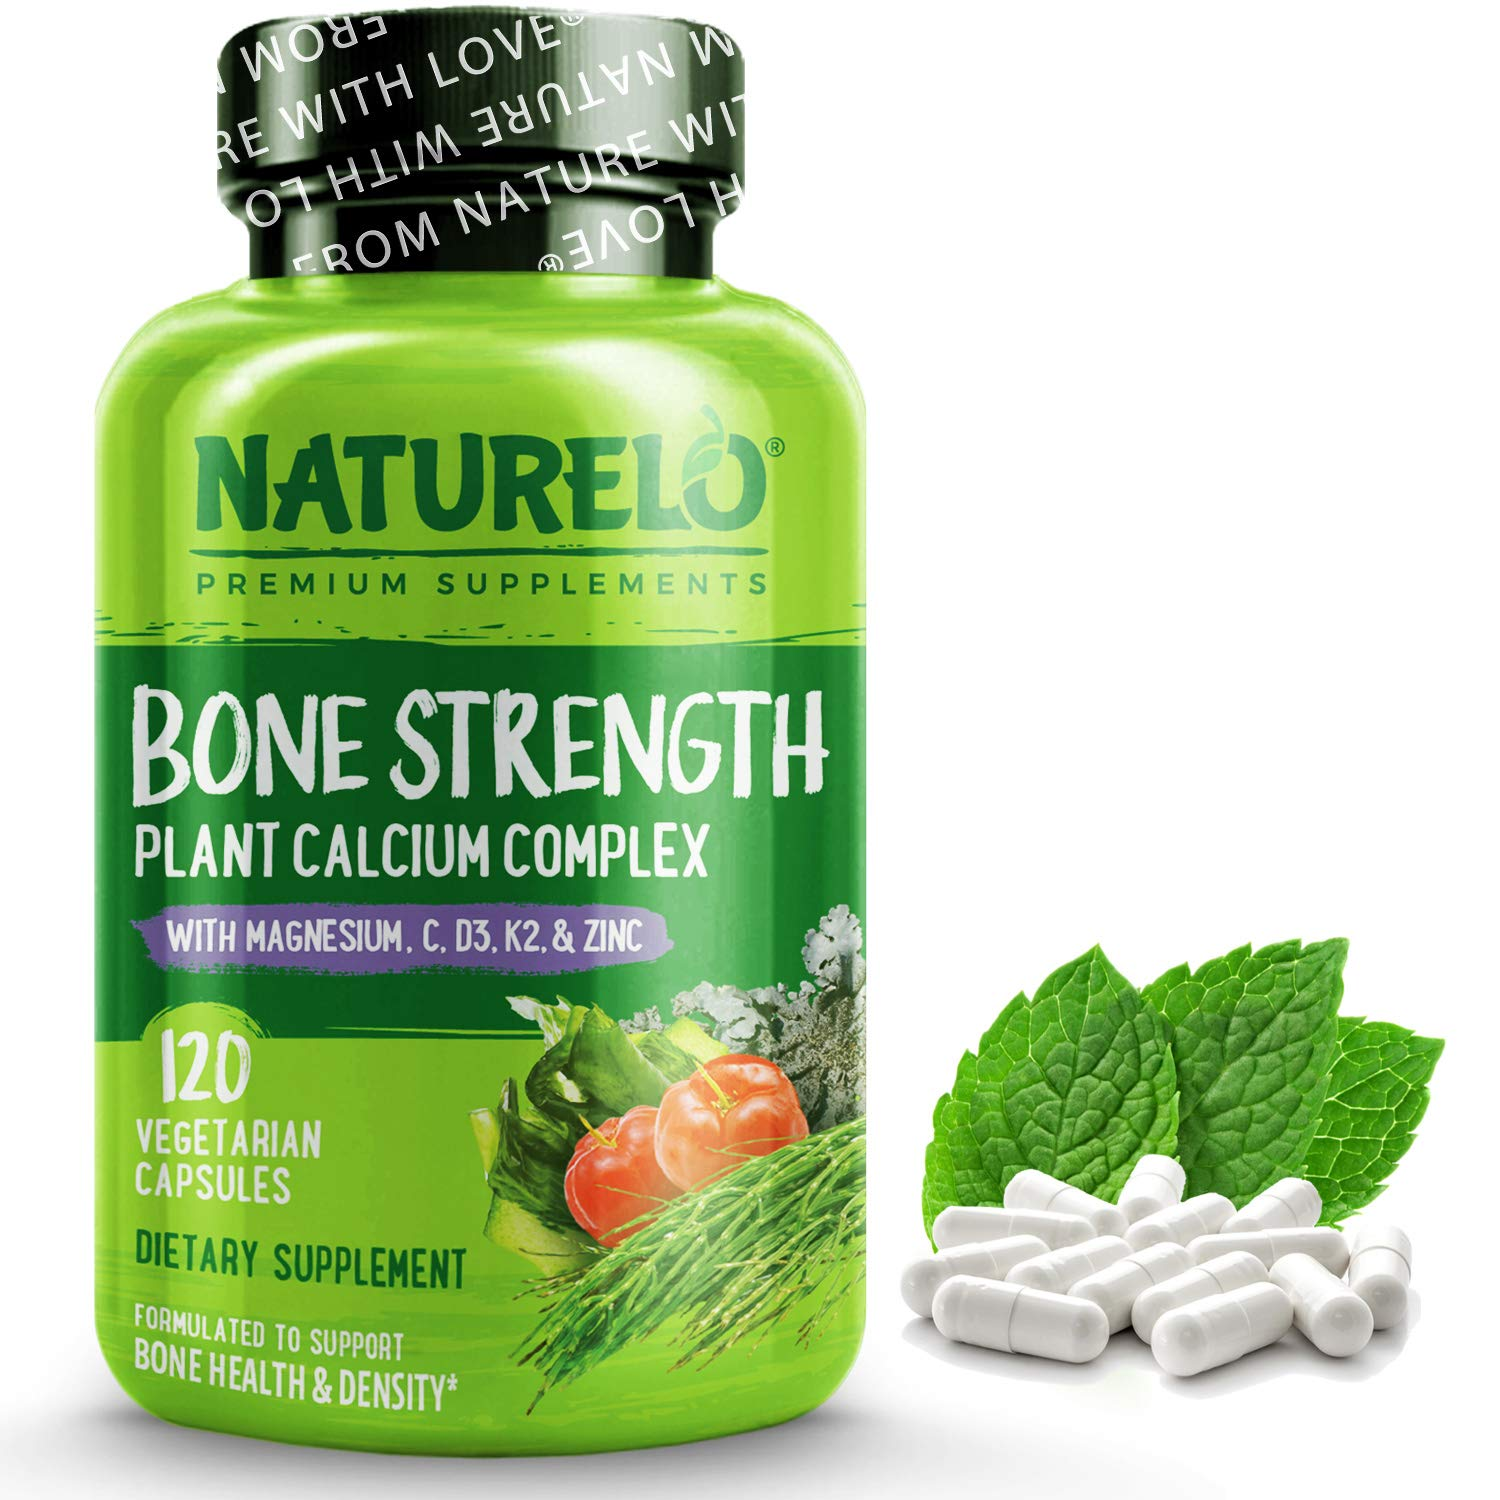 NATURELO Bone Strength - Plant-Based Calcium, Magnesium, Potassium, Vitamin D3, VIT C, K2 - GMO, Soy, Gluten Free Ingredients - Whole Food Supplement for Bone Health - 120 Vegetarian Capsules